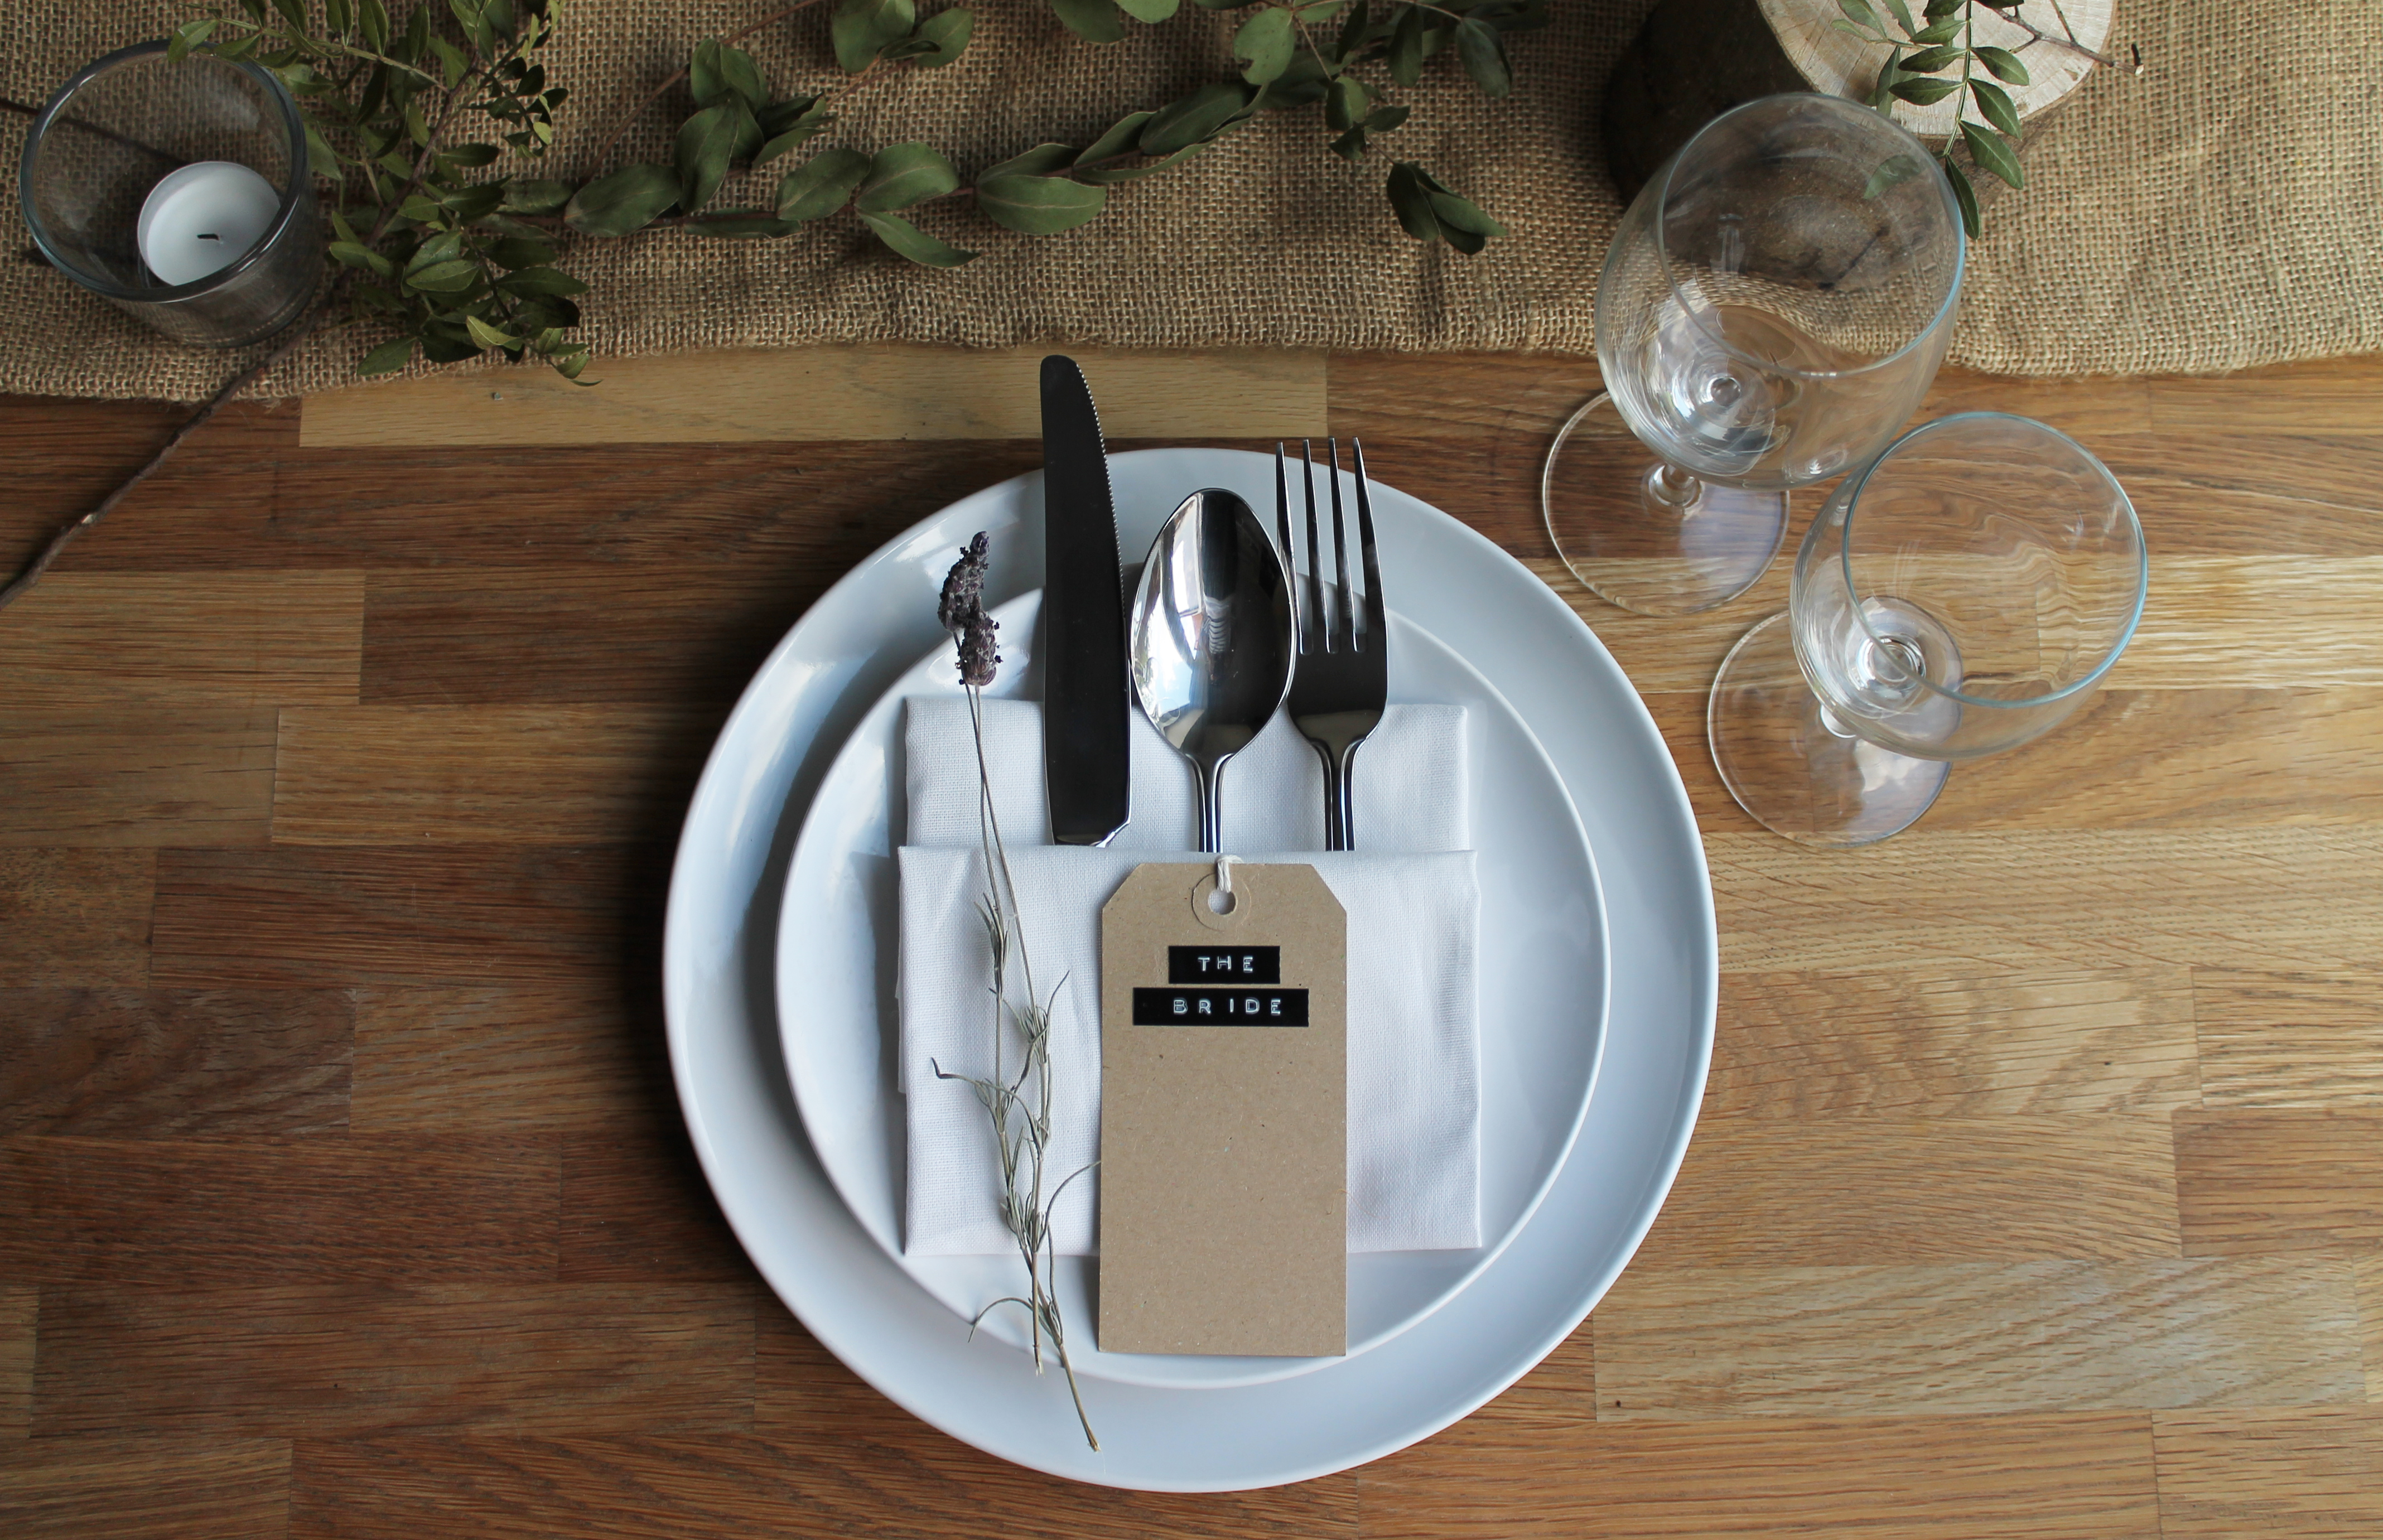 5 rustic place setting ideas the little lending company for Place setting ideas